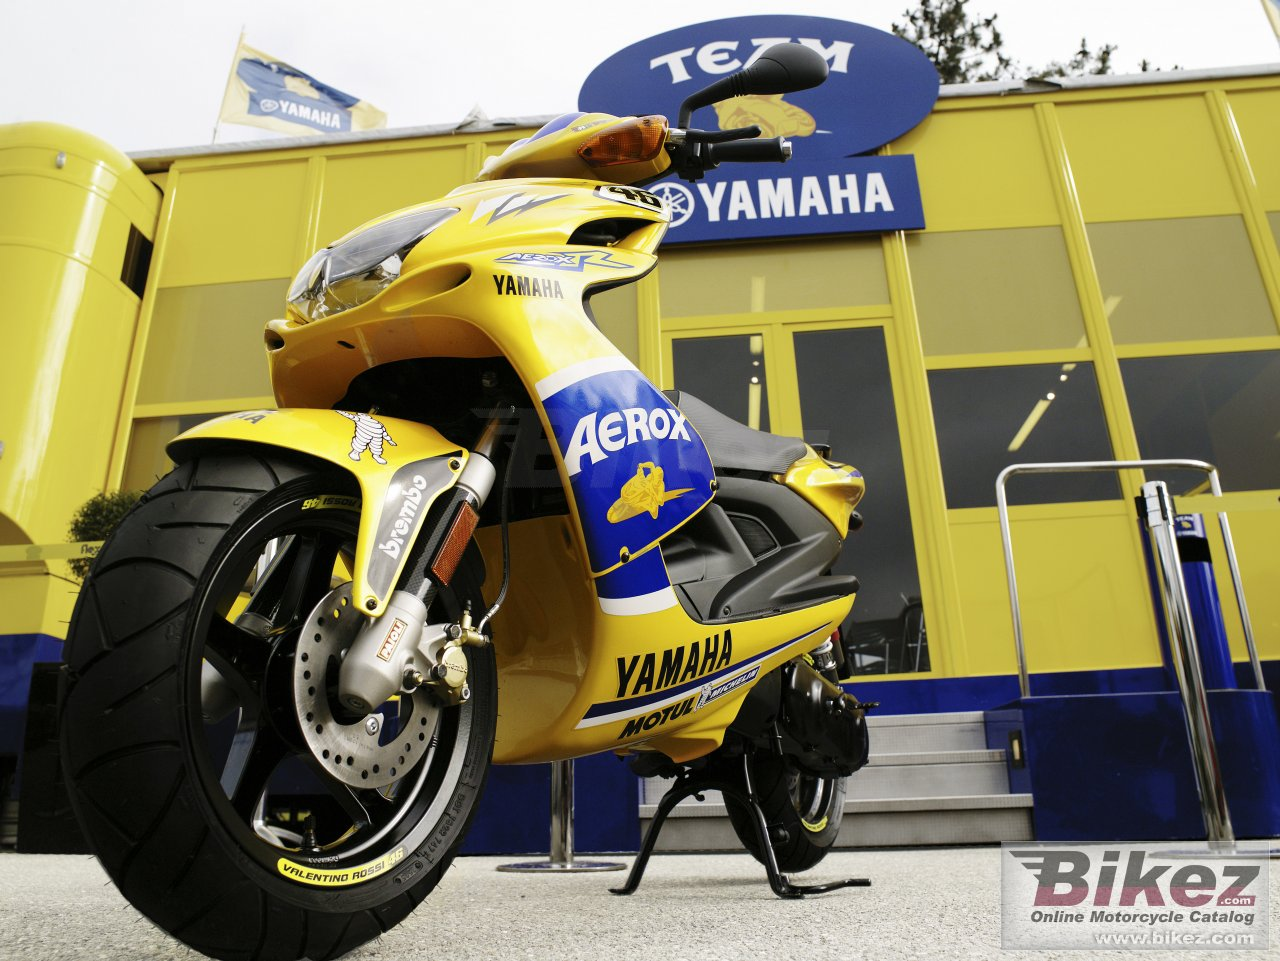 Big Yamaha aerox r race replica picture and wallpaper from Bikez.com